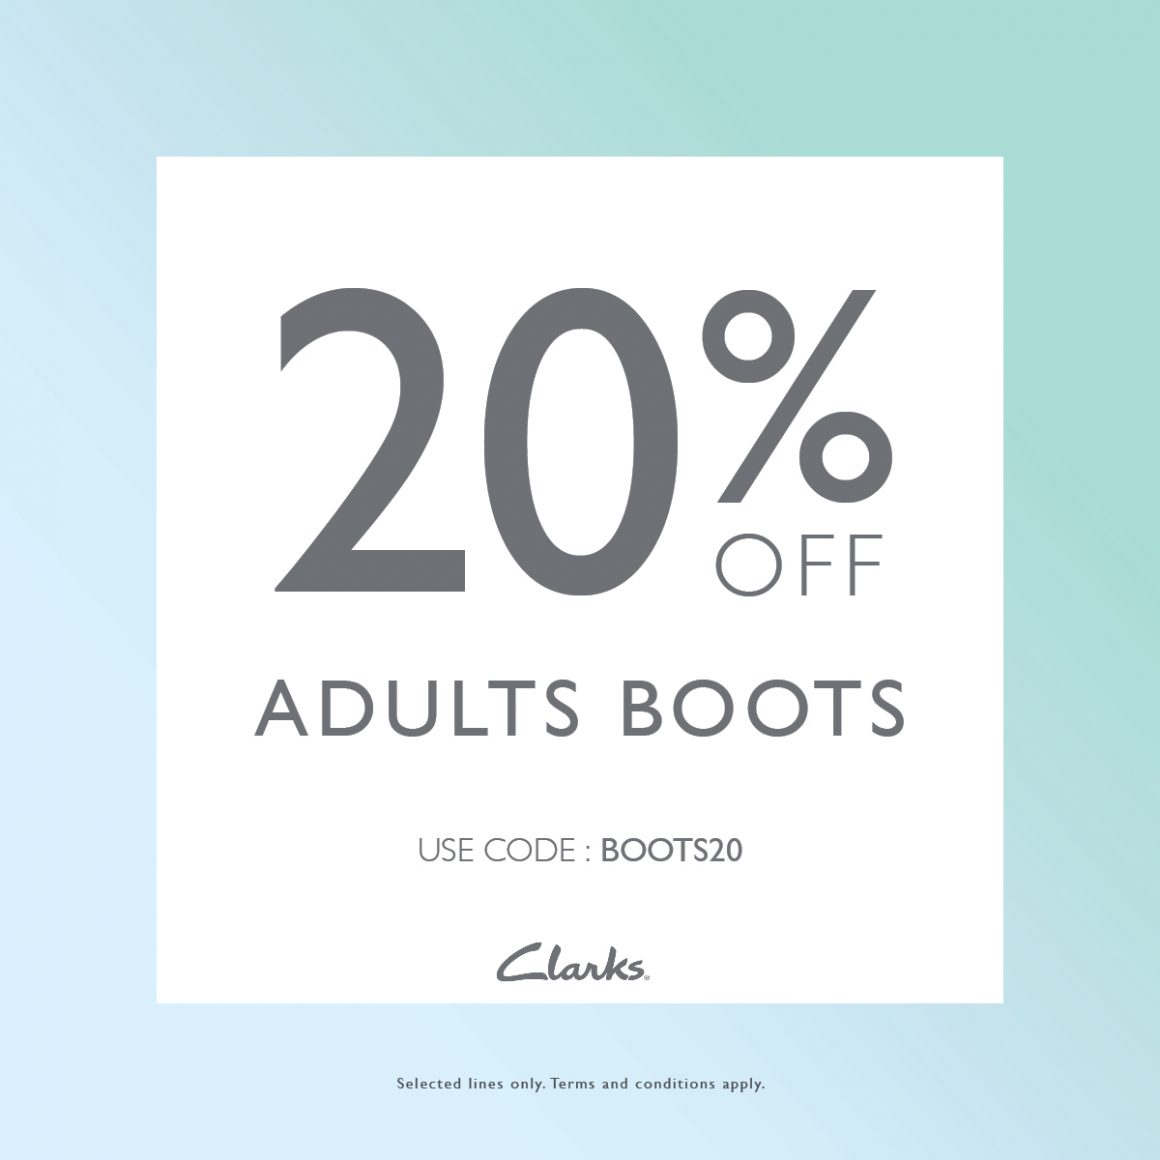 20% OFF ADULTS BOOTS AT CLARKS